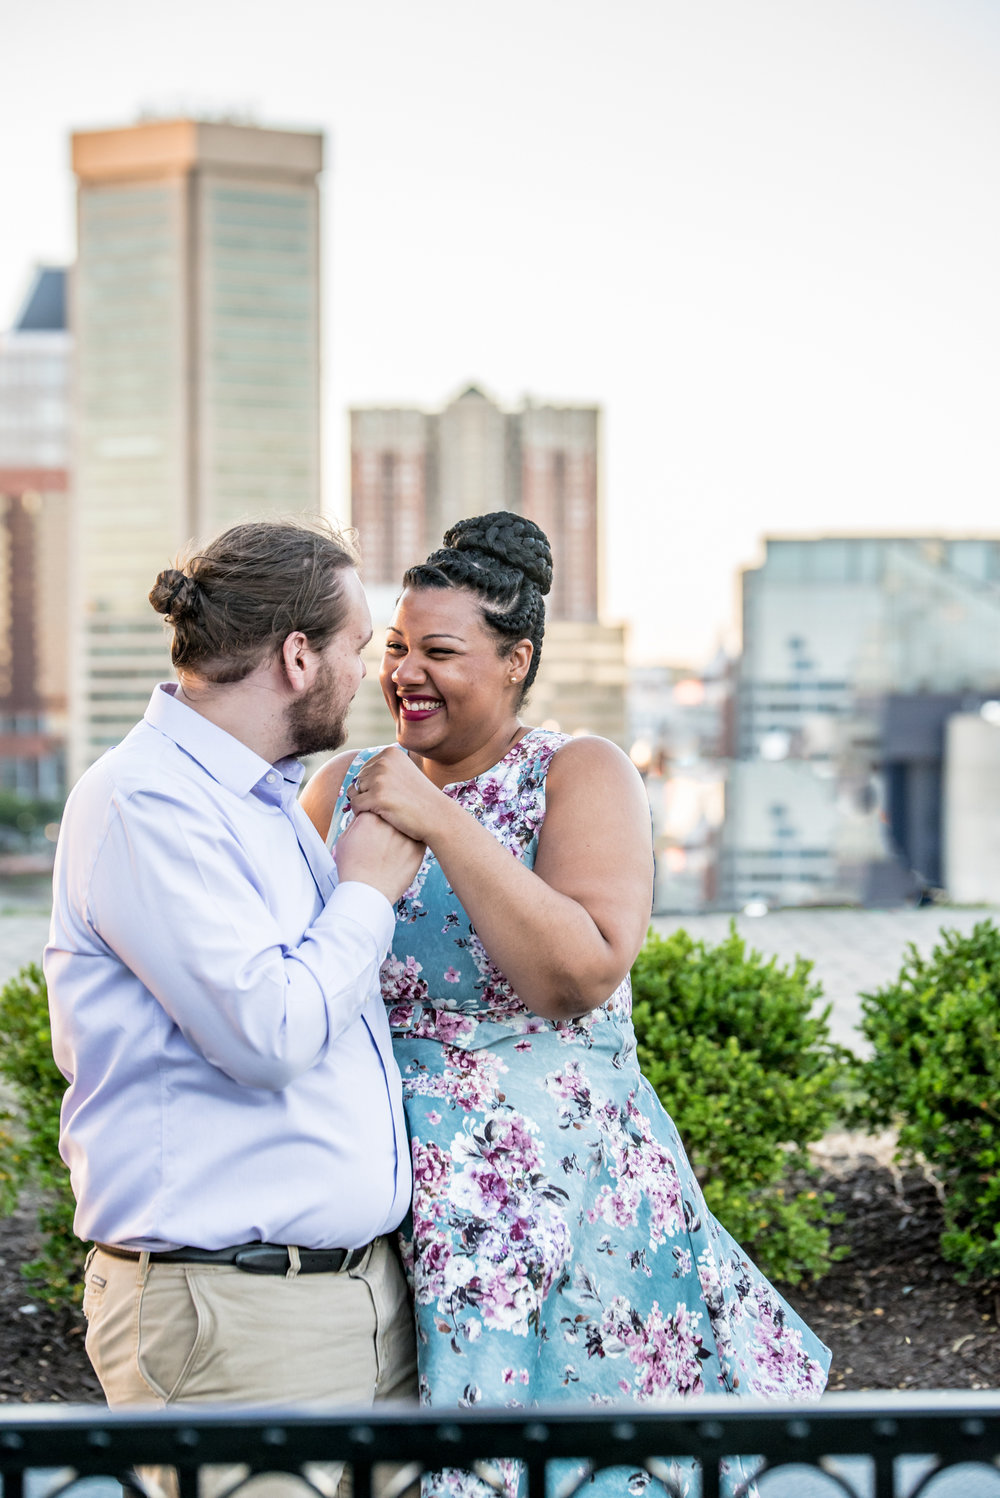 Ronnie Bliss Wedding Photography Baltimore Maryland laughing with clasped hands